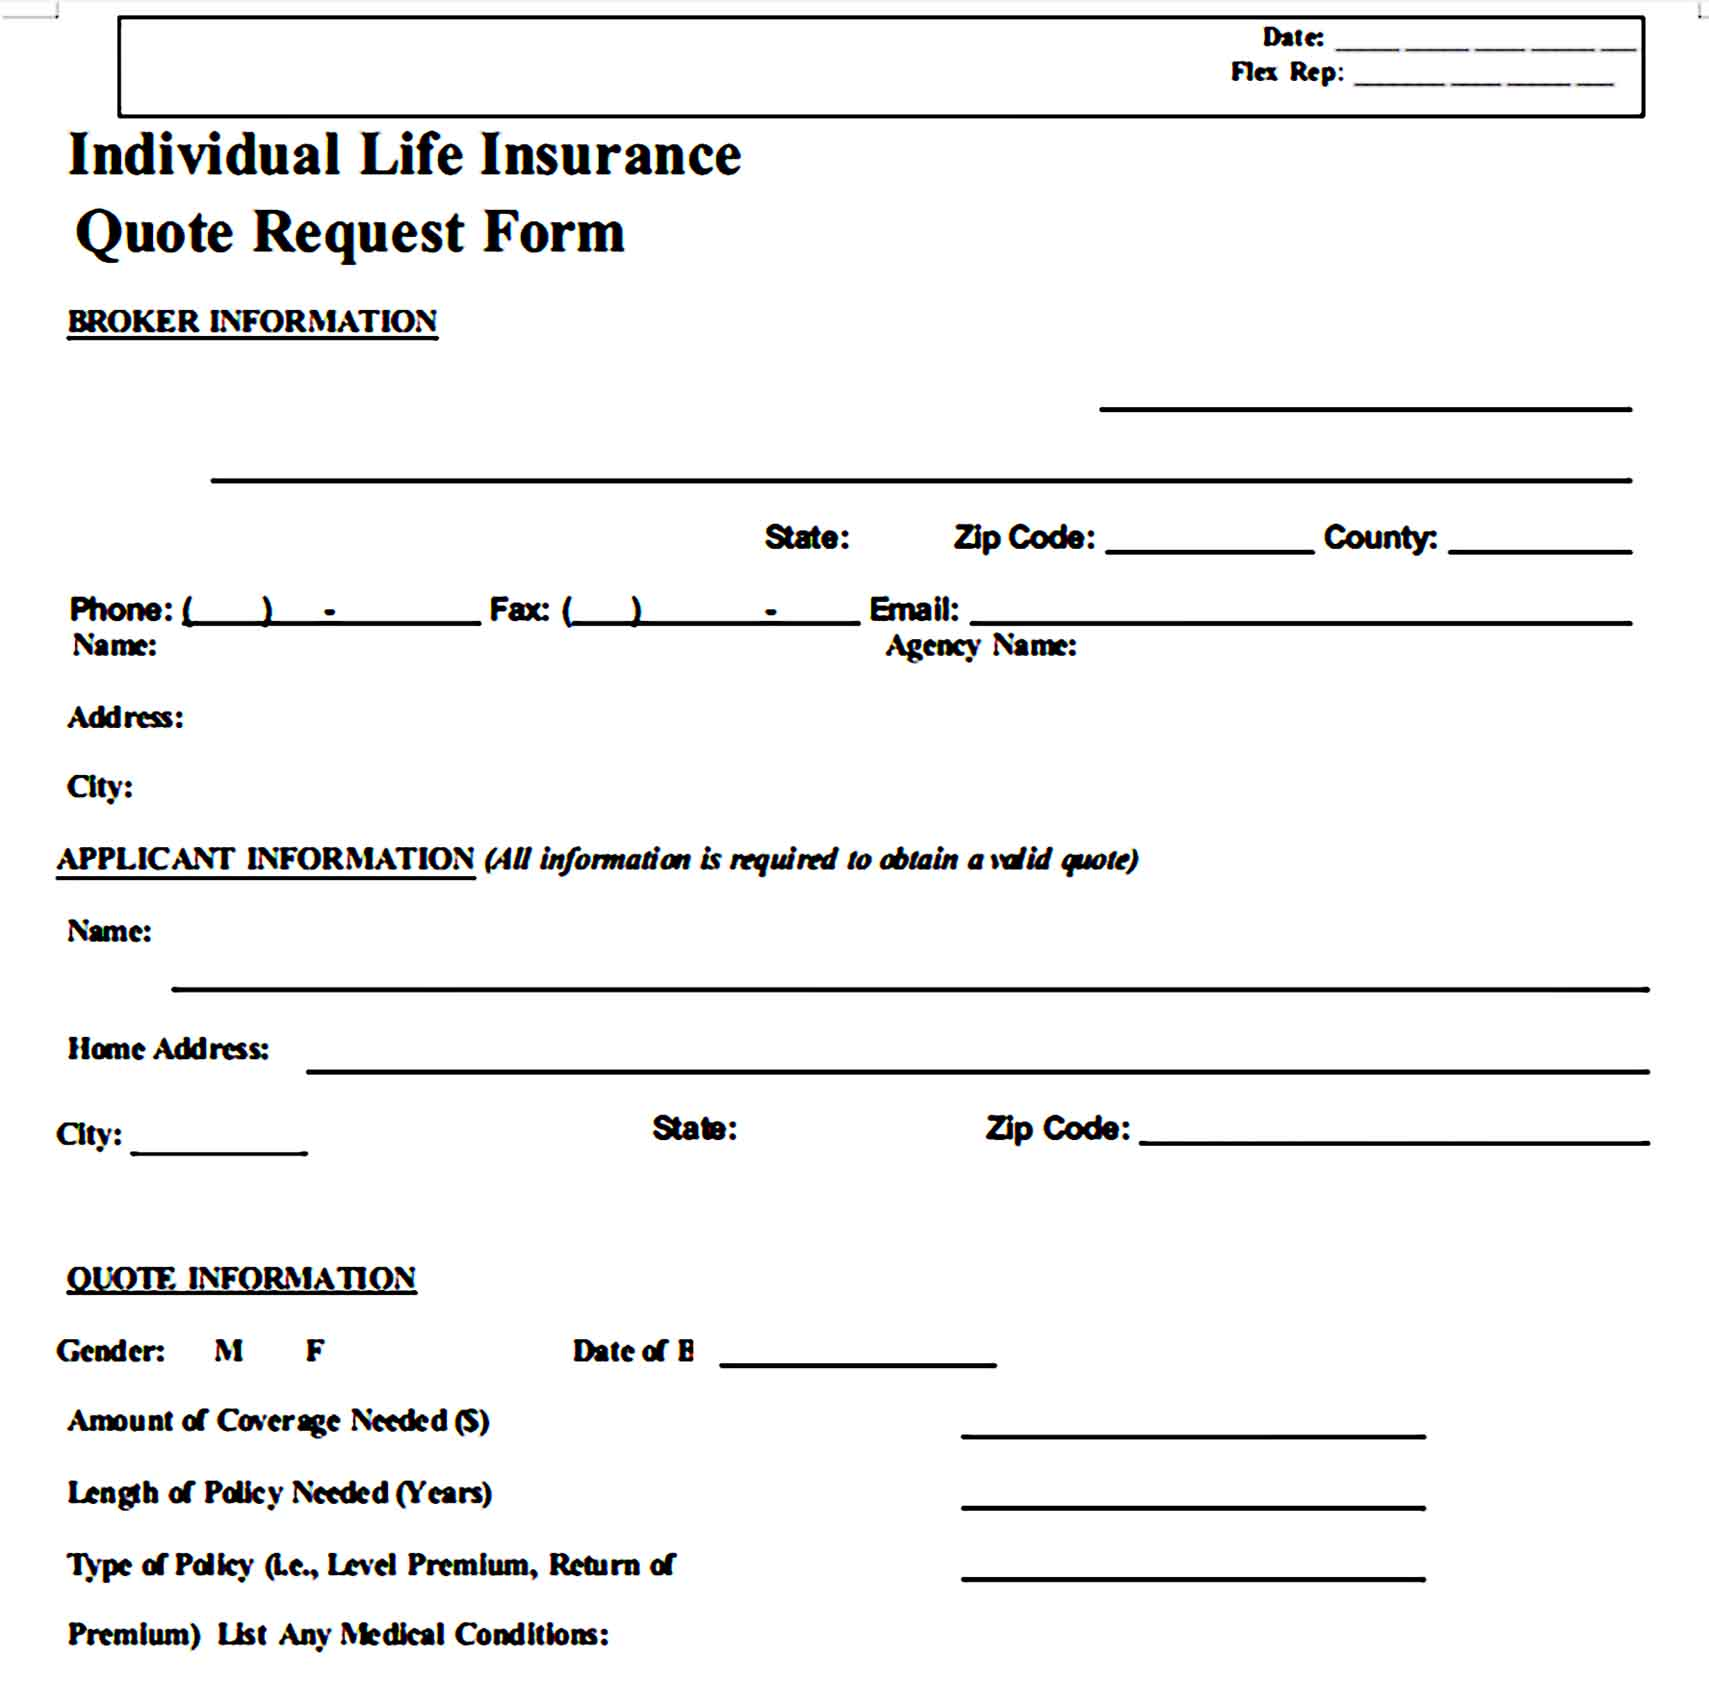 Individual Life Insurance Quote Request Form